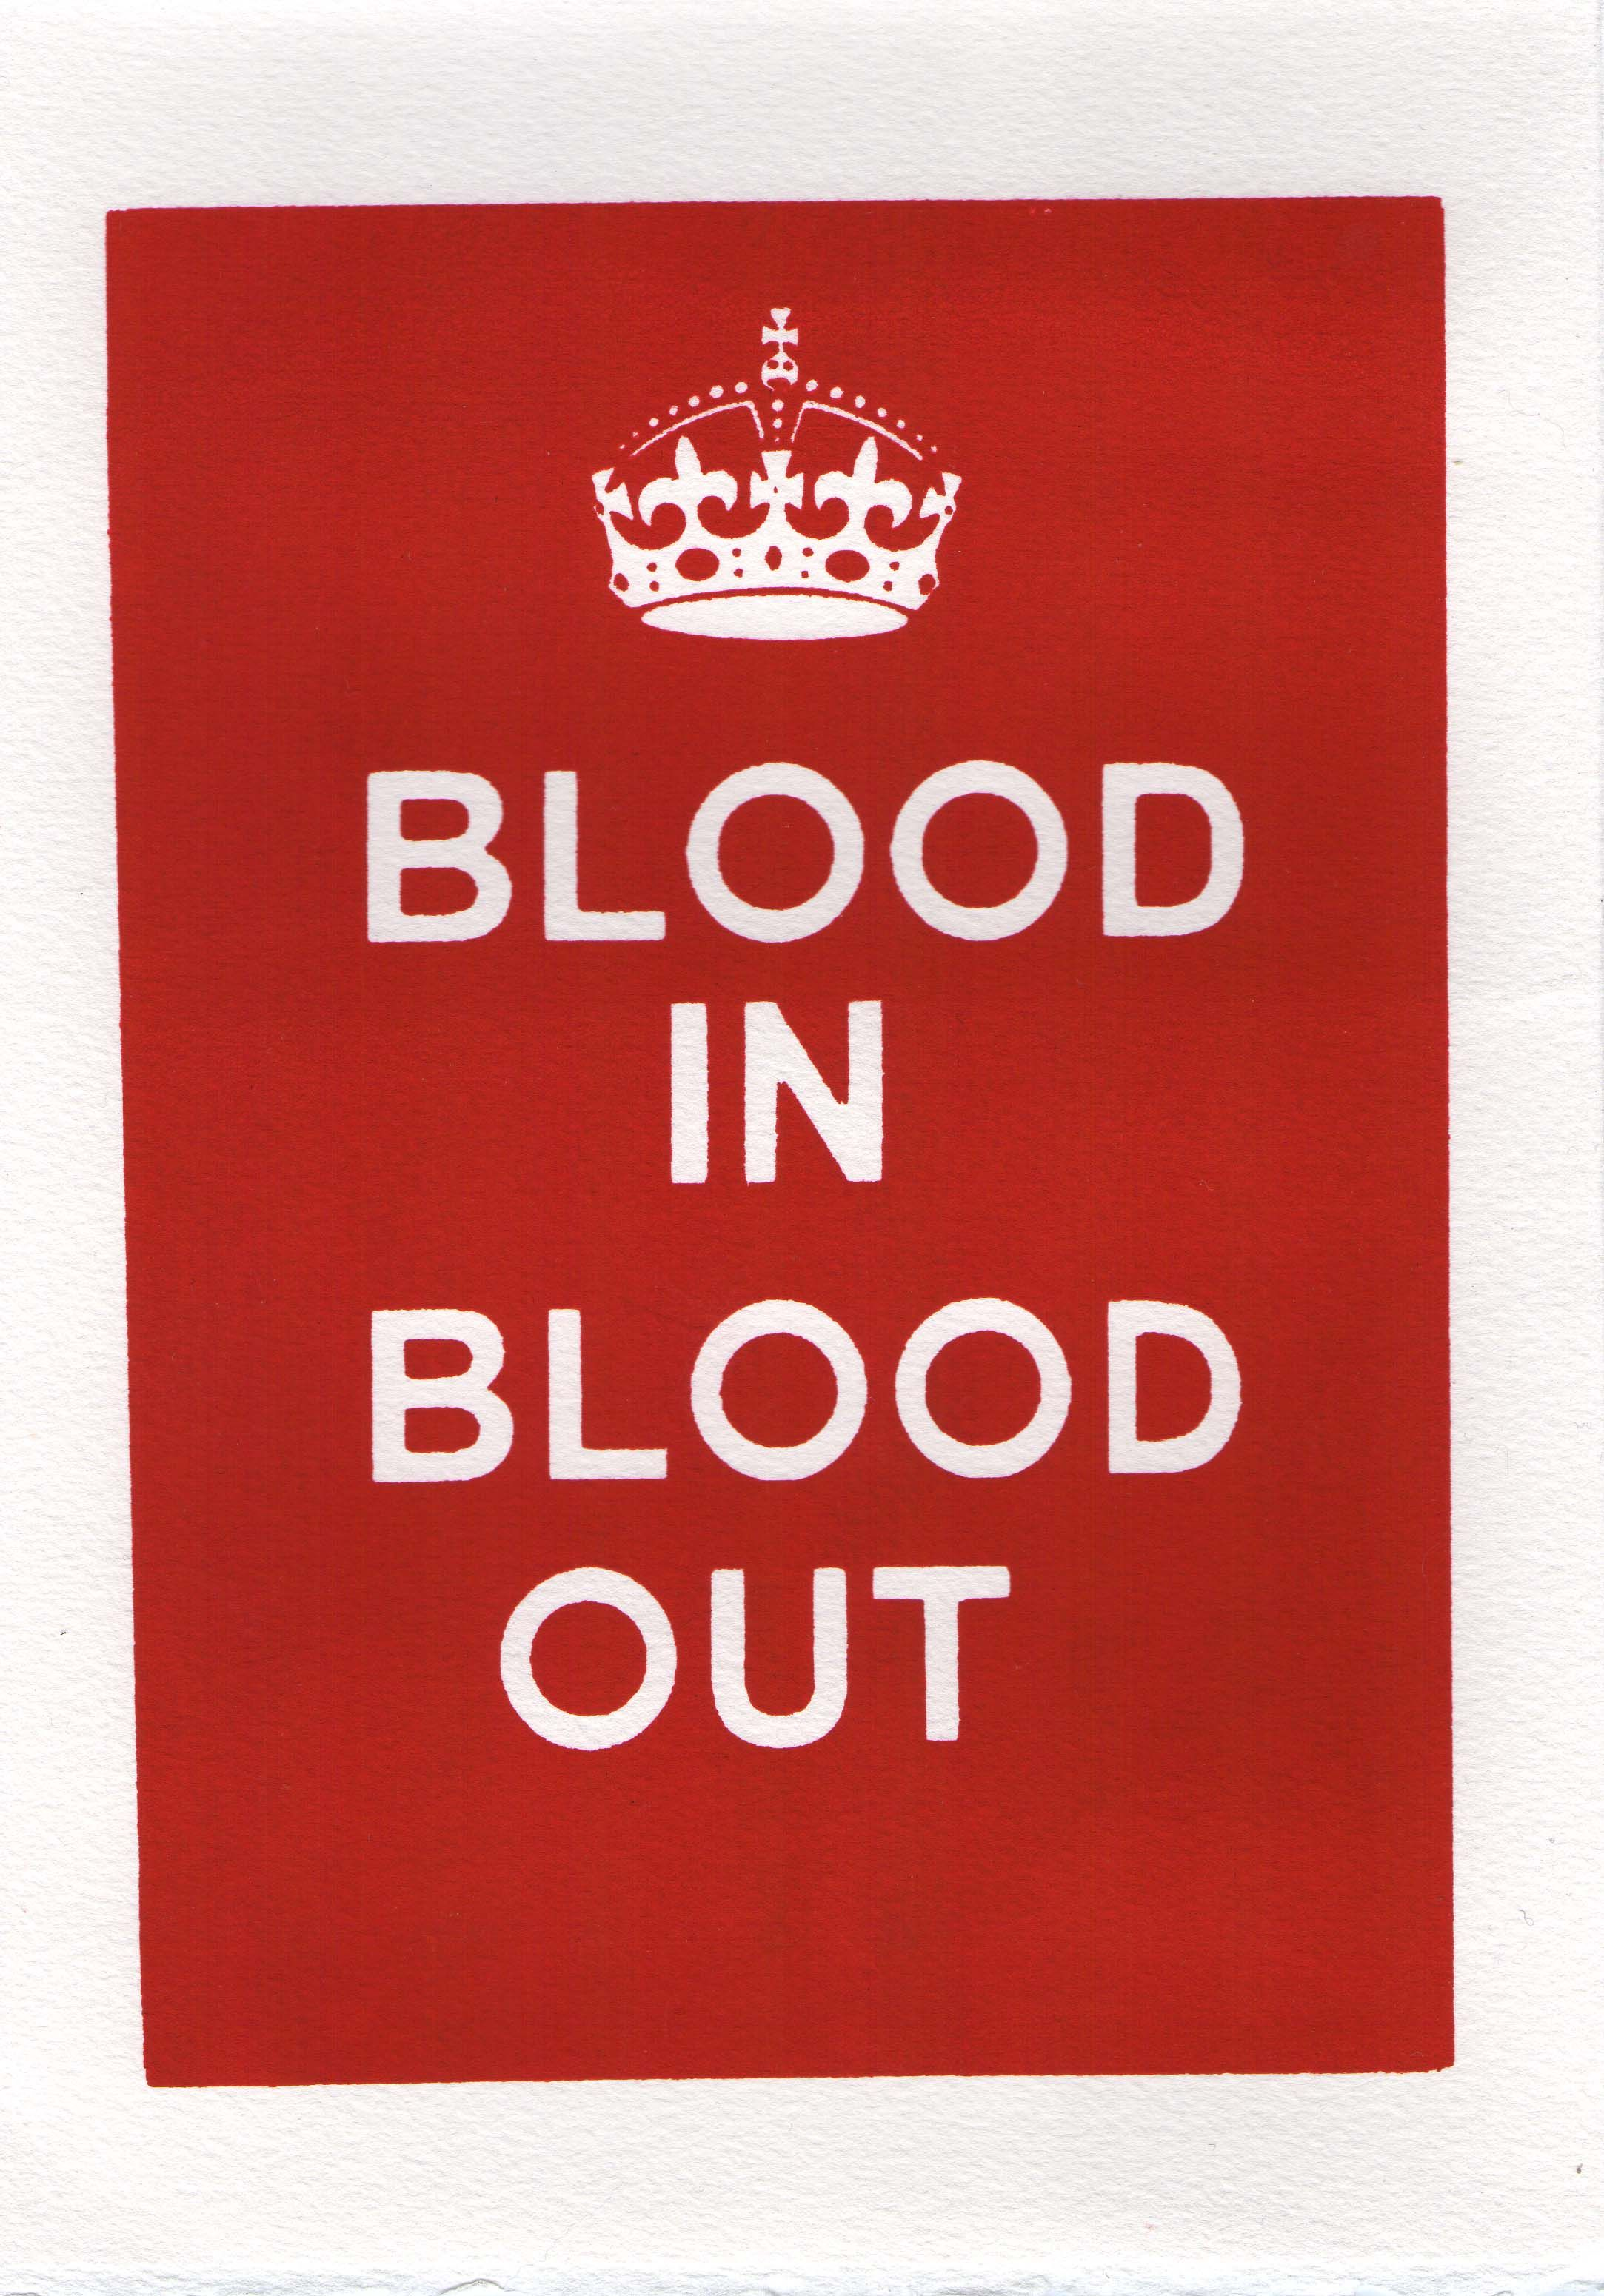 Blood in blood out movie quotes blood inblood out with care movie biocorpaavc